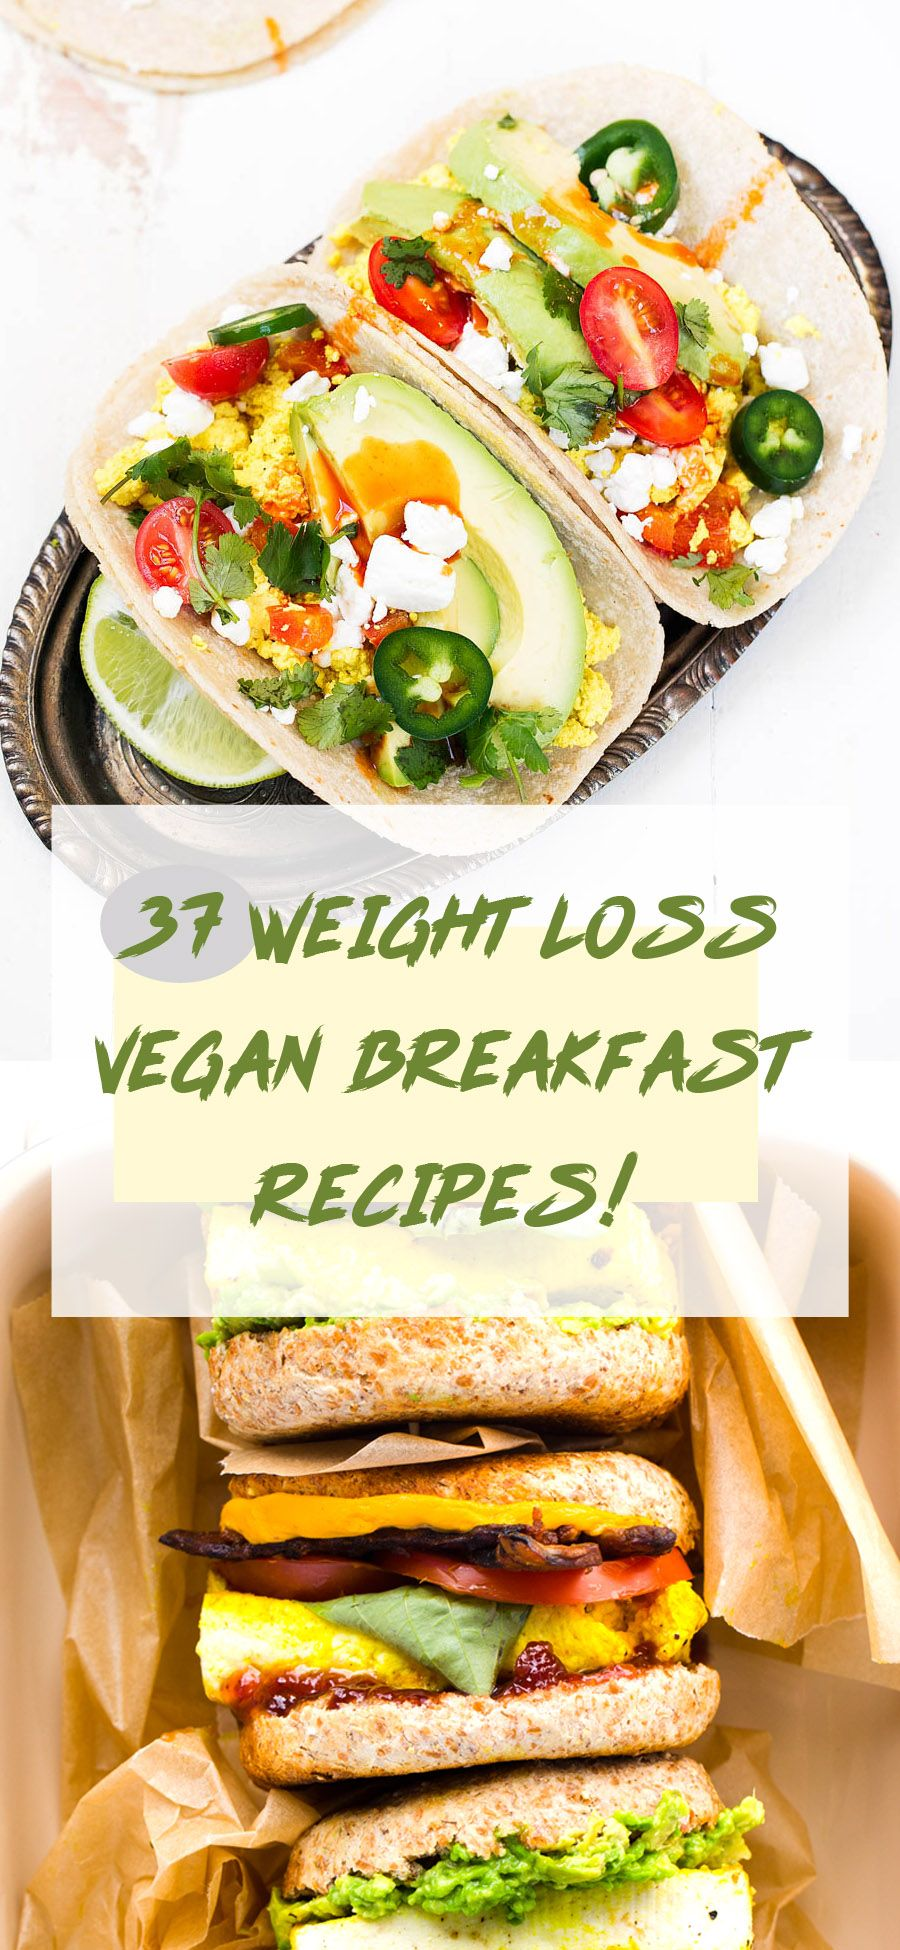 37 Vegan Breakfasts That Are Insanely Delicious And Will Help You Lose Weight! images